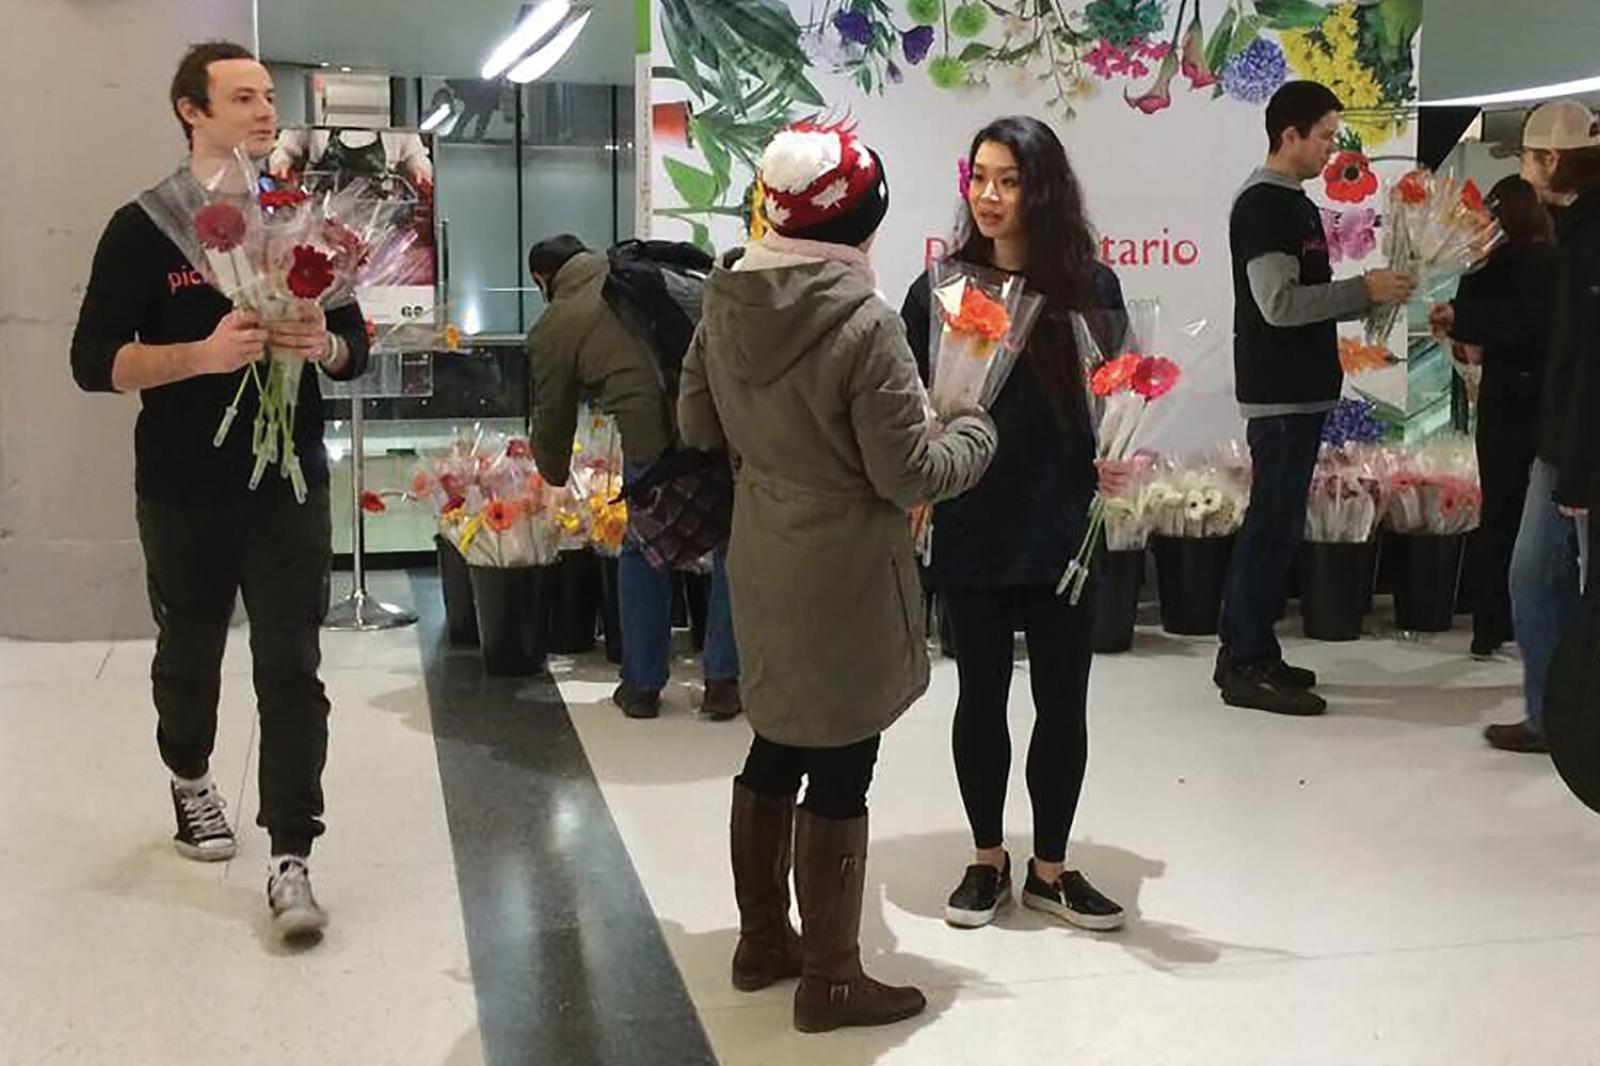 Flowers bring happiness and smiles to Union Station commuters